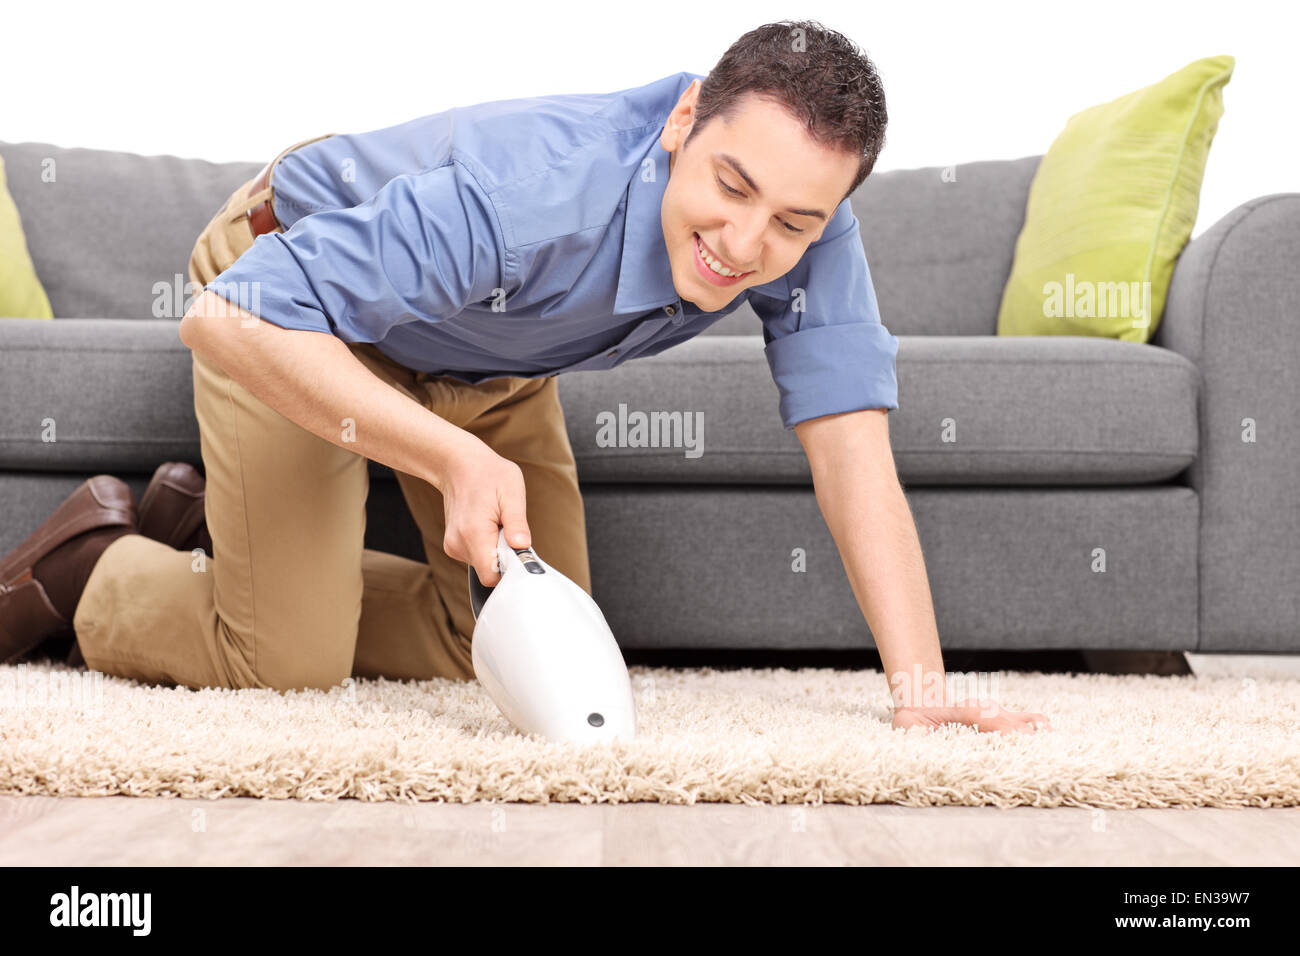 Young joyful man vacuuming a carpet with a handheld vacuum cleaner isolated on white background Stock Photo